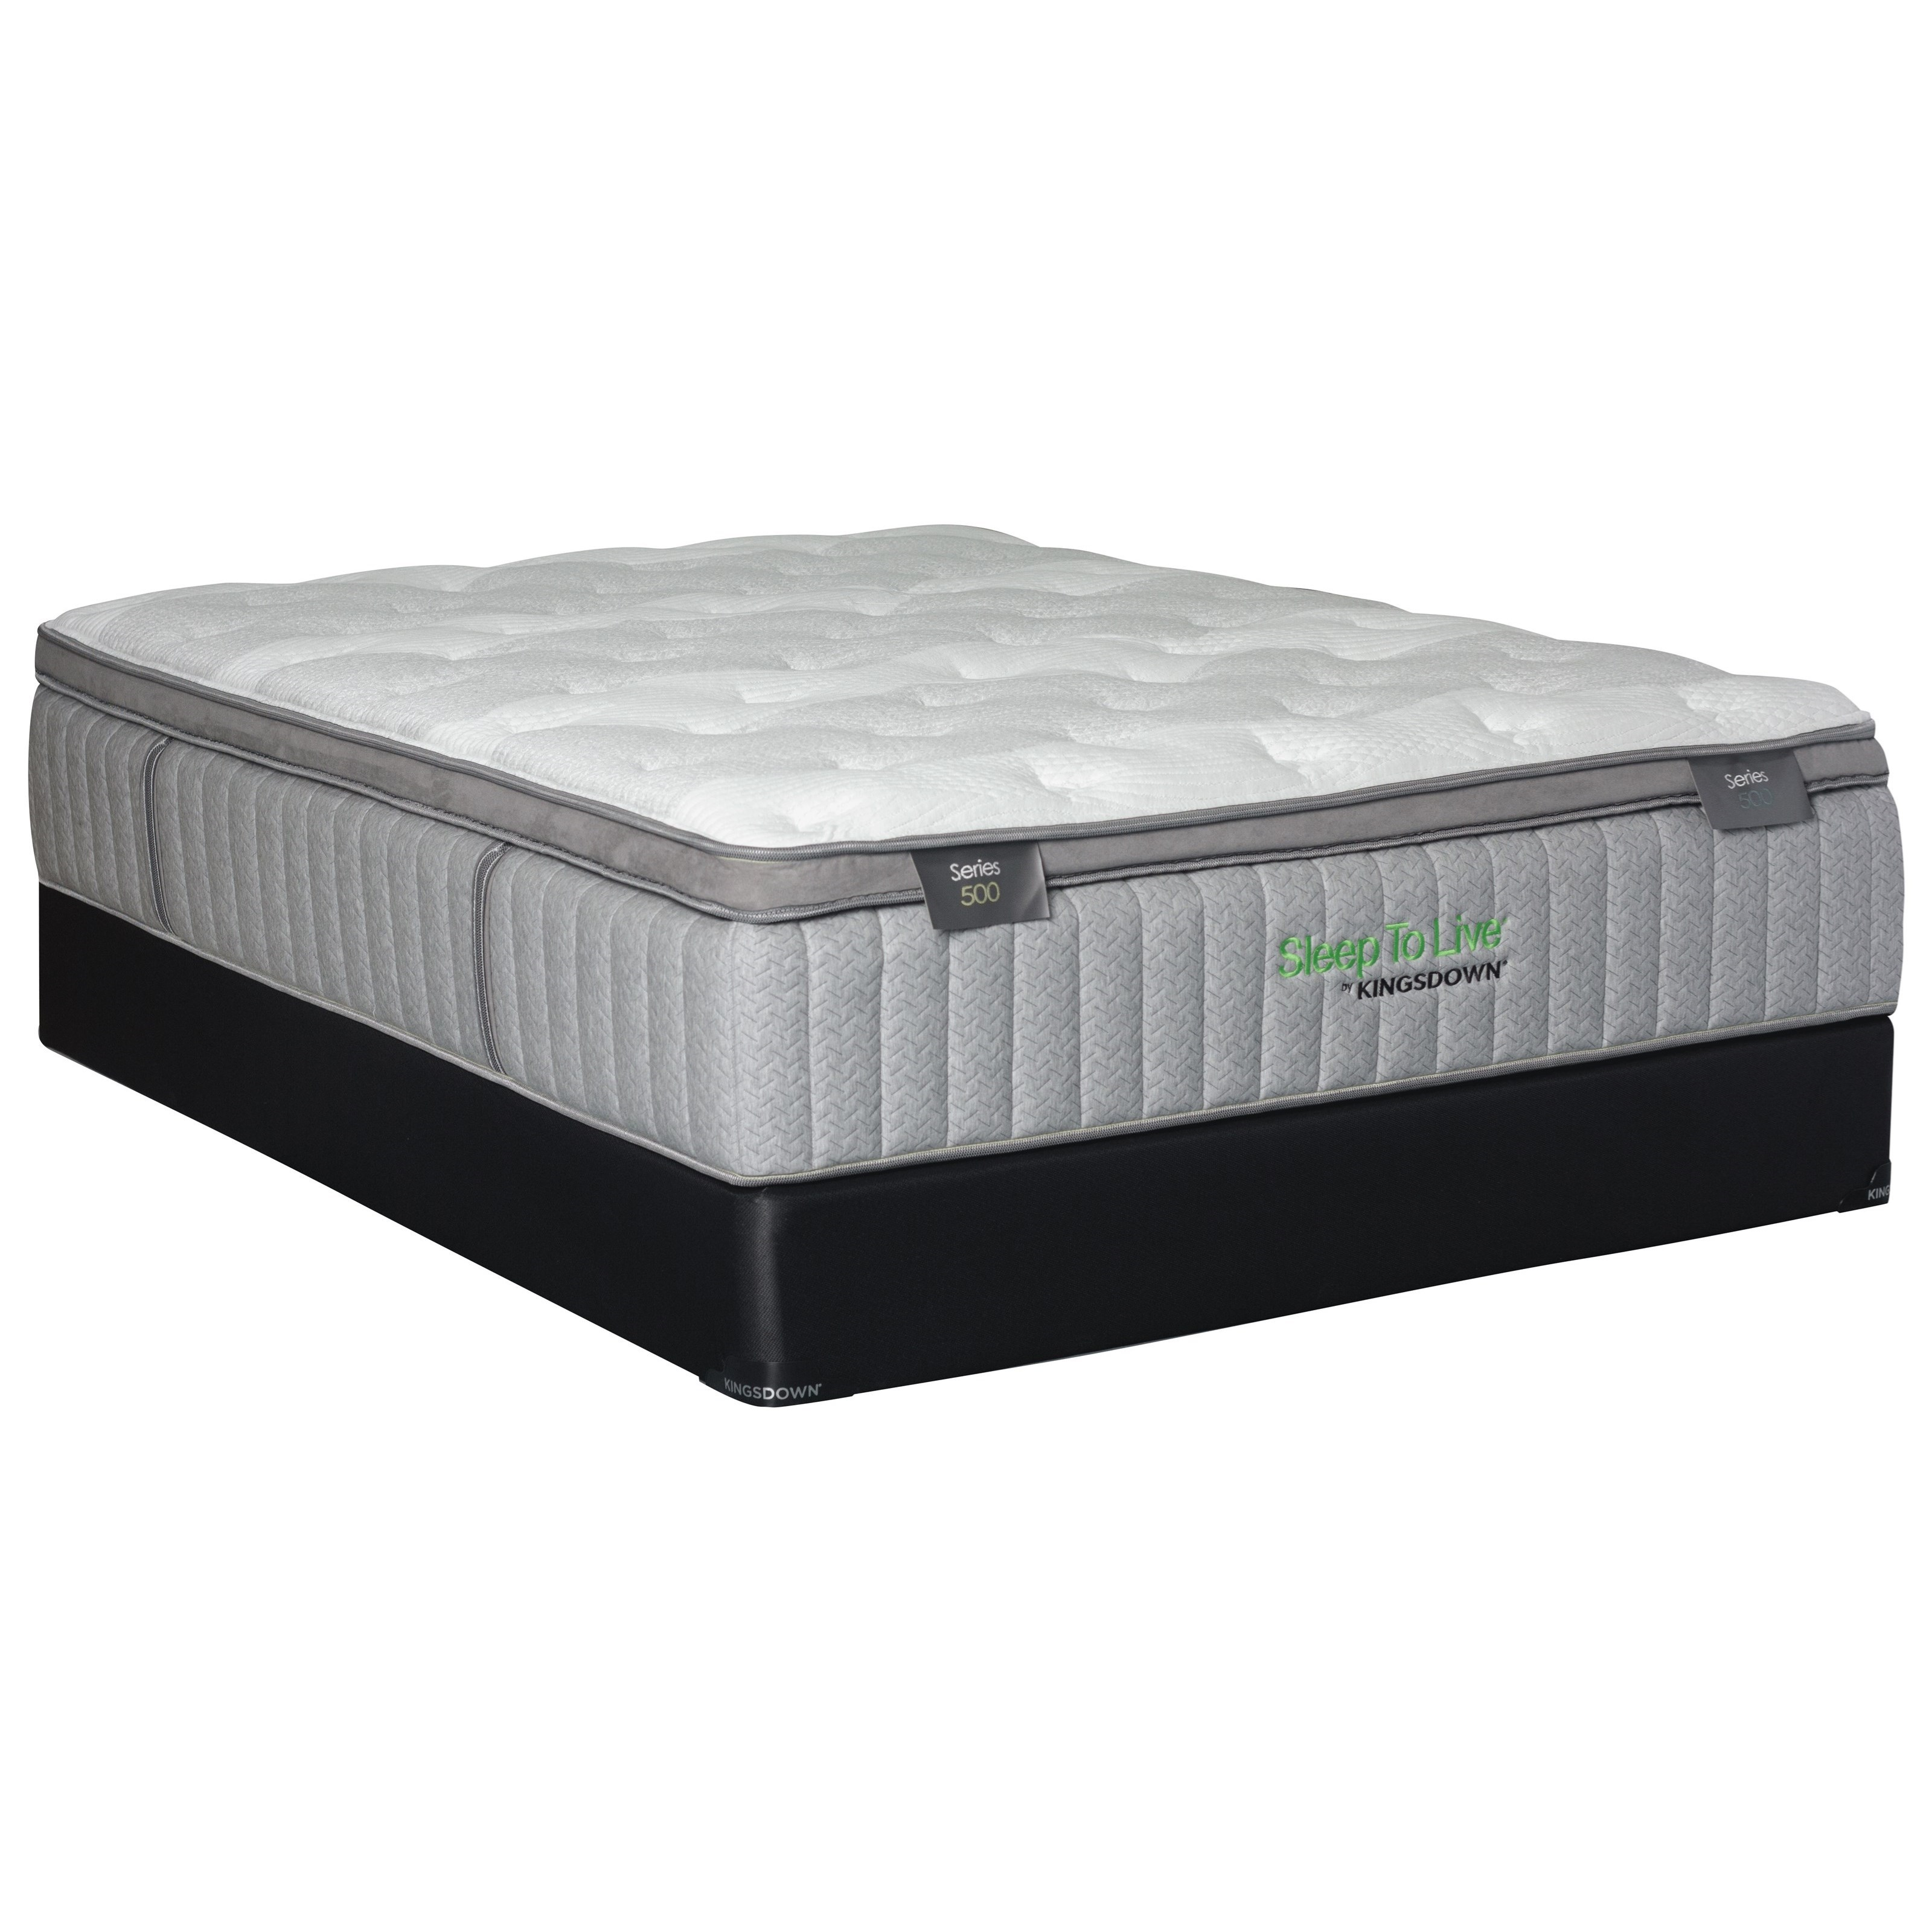 Back Smart Series 500 Twin XL Back Smart Series 500 Mattress Set by Sleep to Live at Baer's Furniture